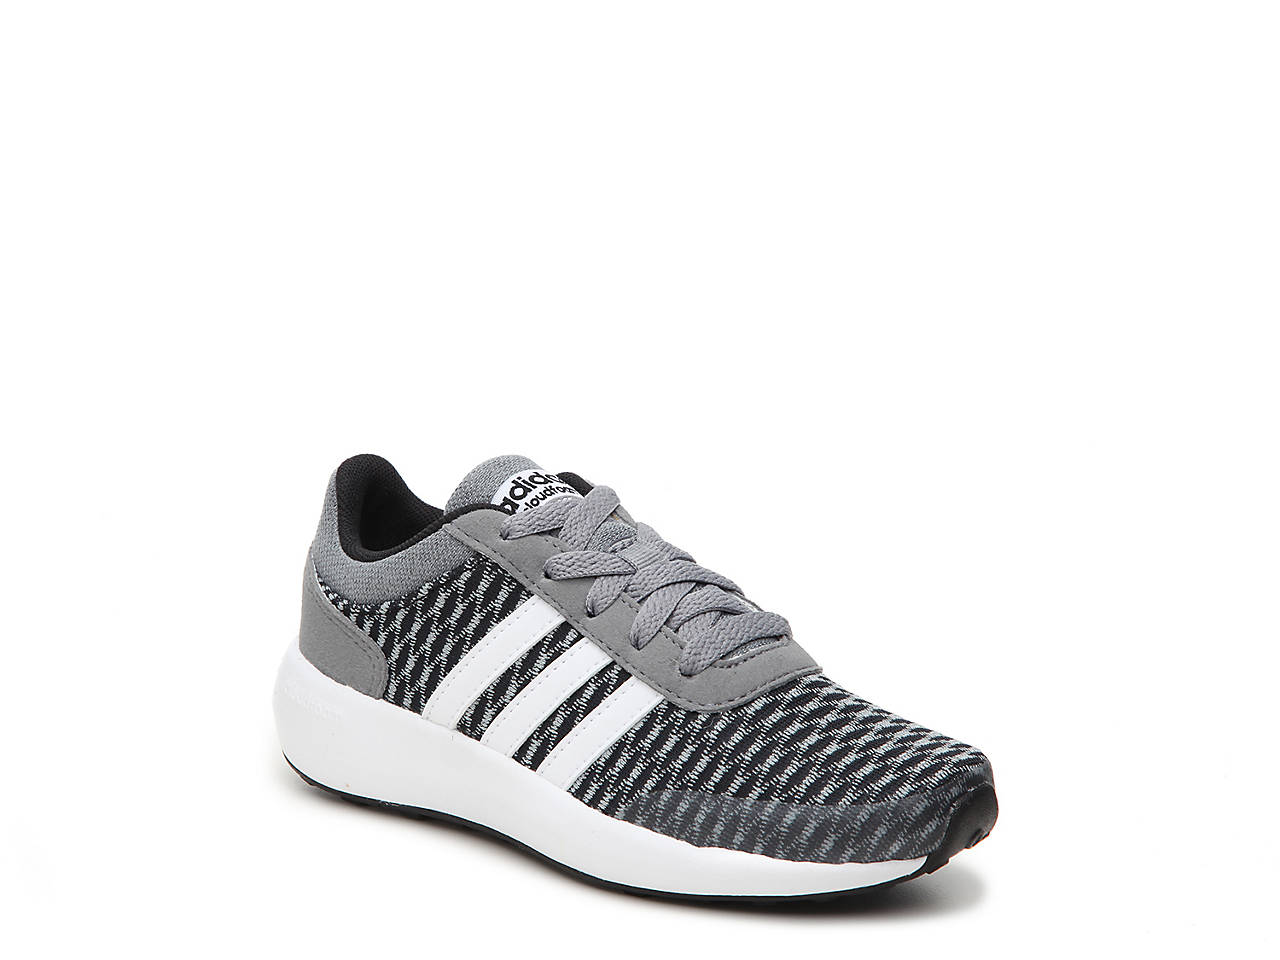 adidas neo kids' cloudfoam race shoe